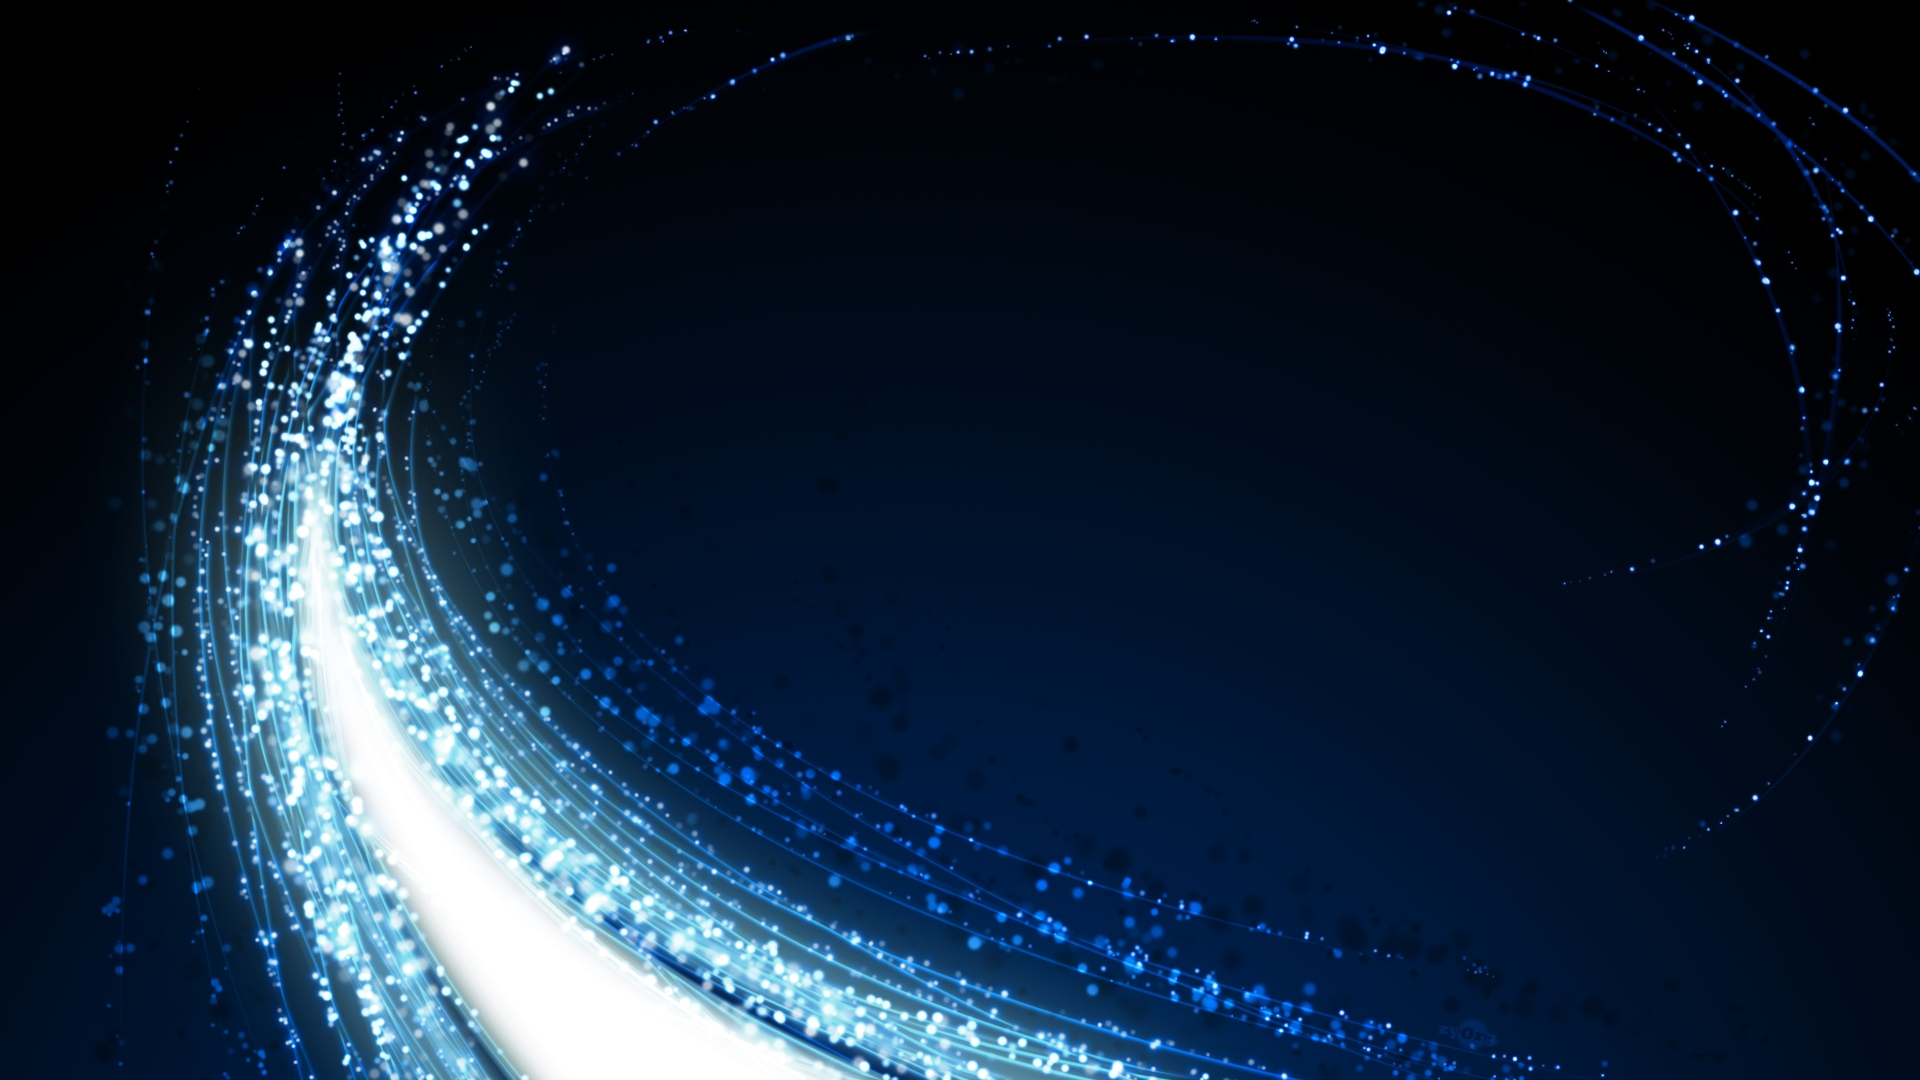 blue-wallpaper